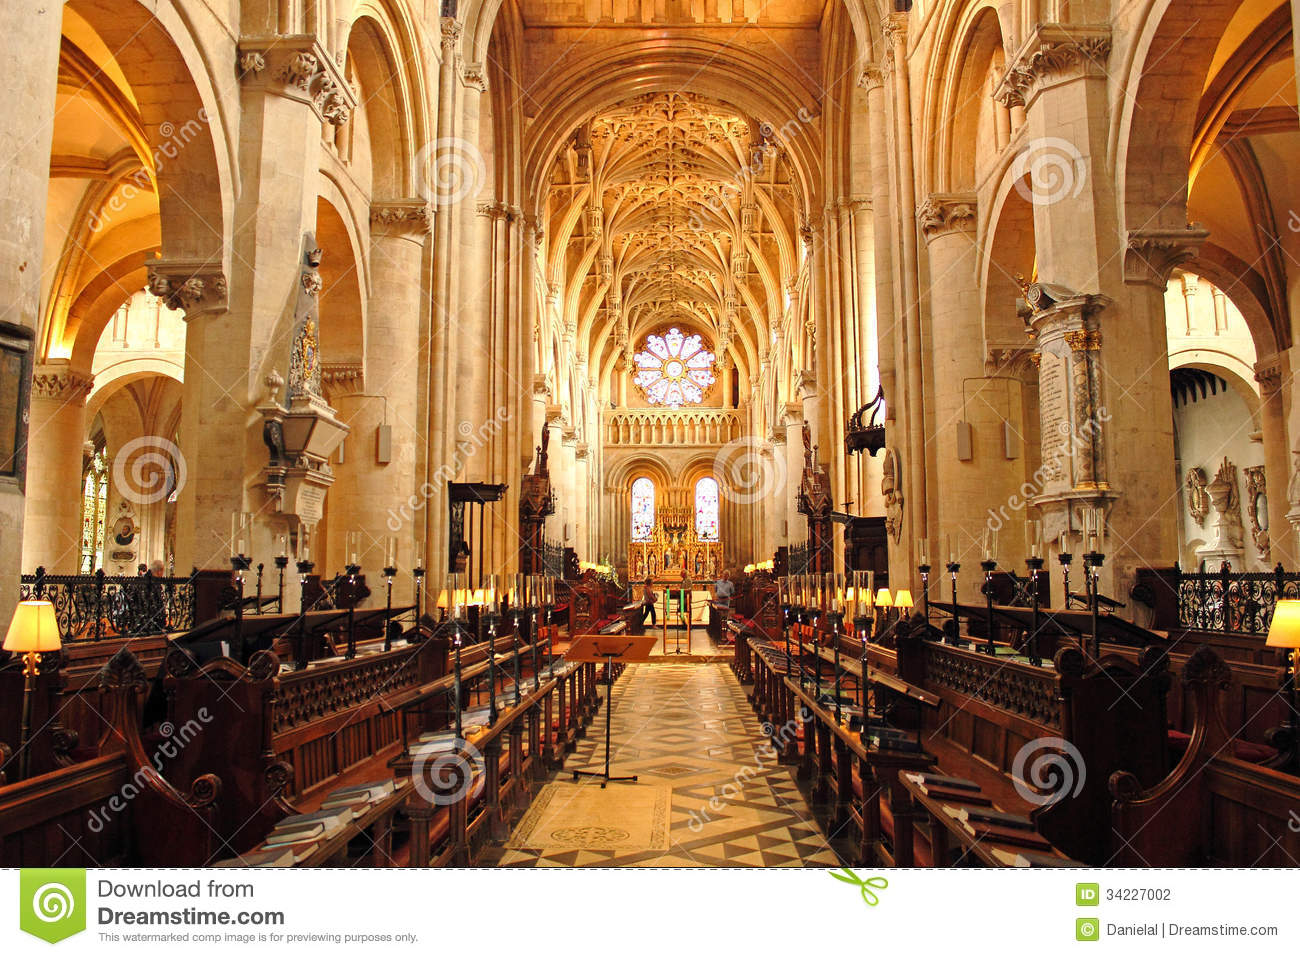 Wonderful Christ Church Chapel #1: Christ-church-cathedral-oxford-diocese-chapel-college-34227002.jpg